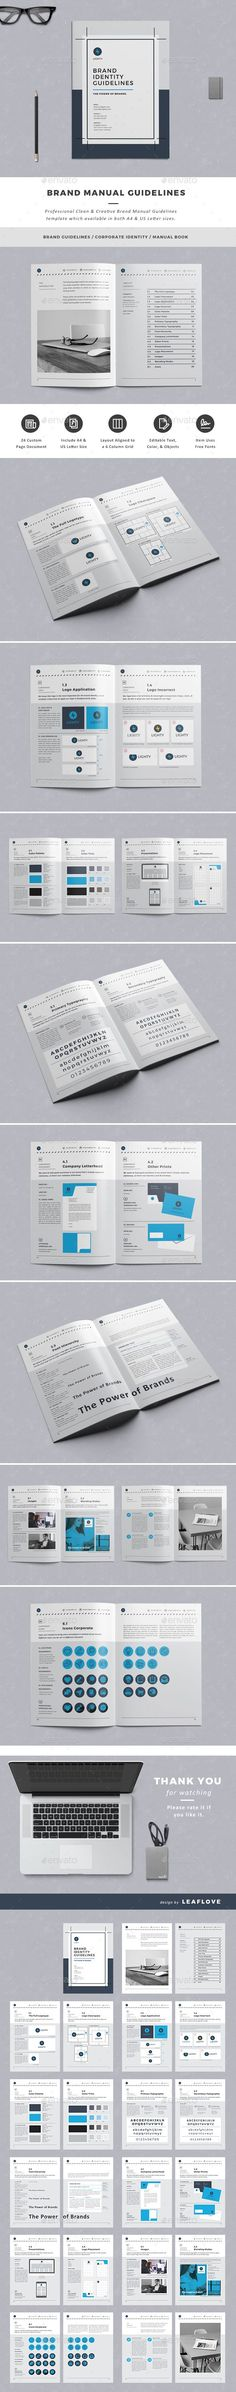 Indesign The Prestige - Brand Manual Template 530845 Design - business manual template